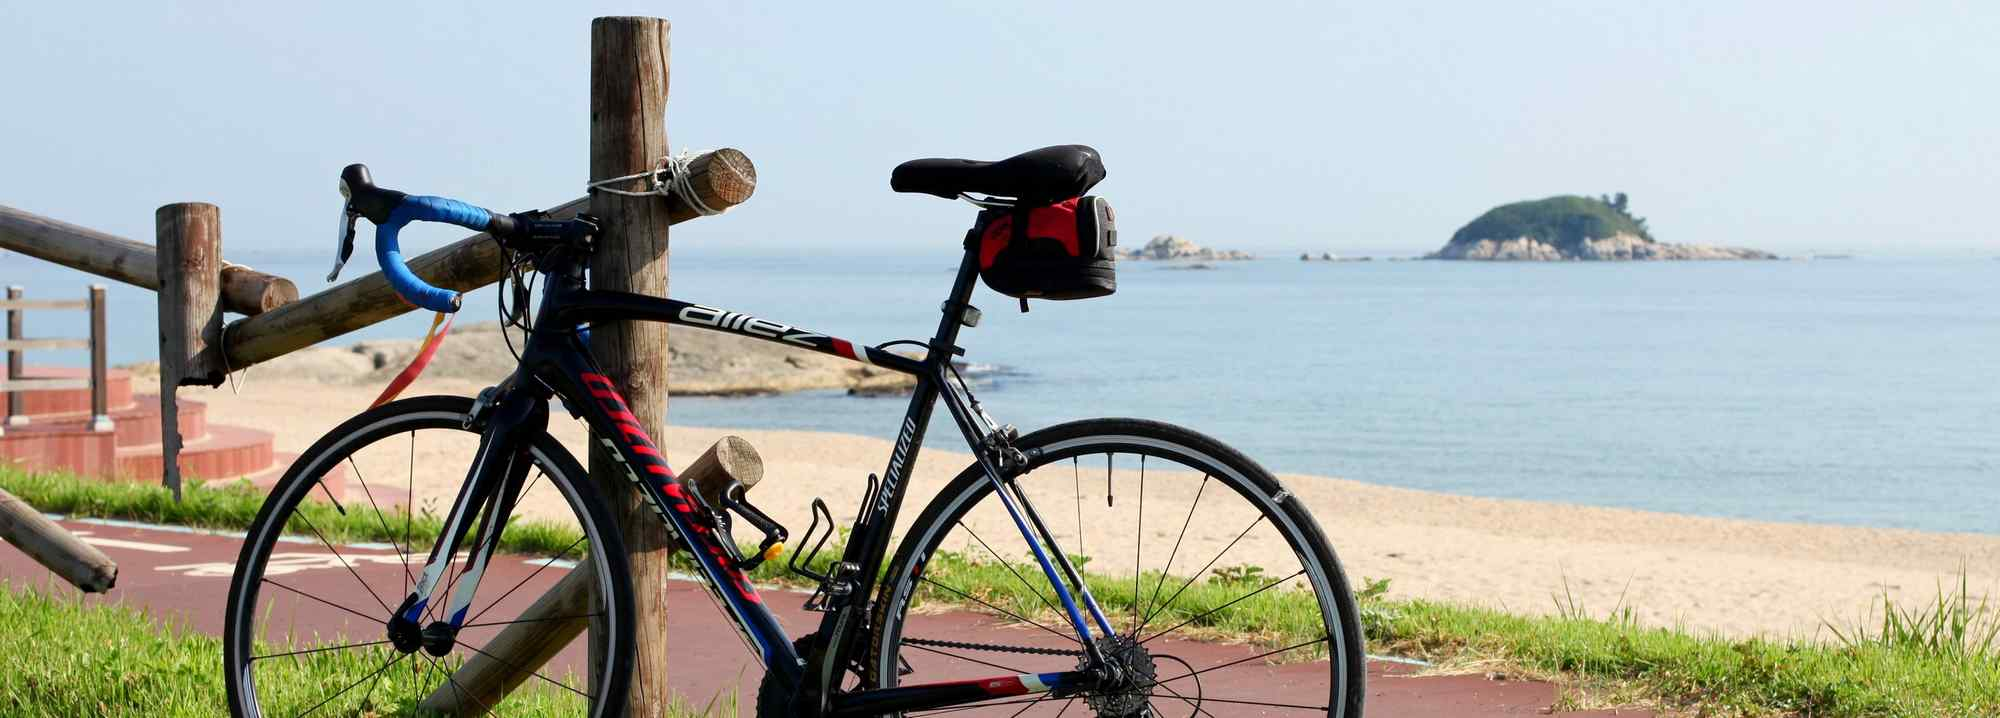 A picture of a bike and small island near the city of Sokcho in Korea.